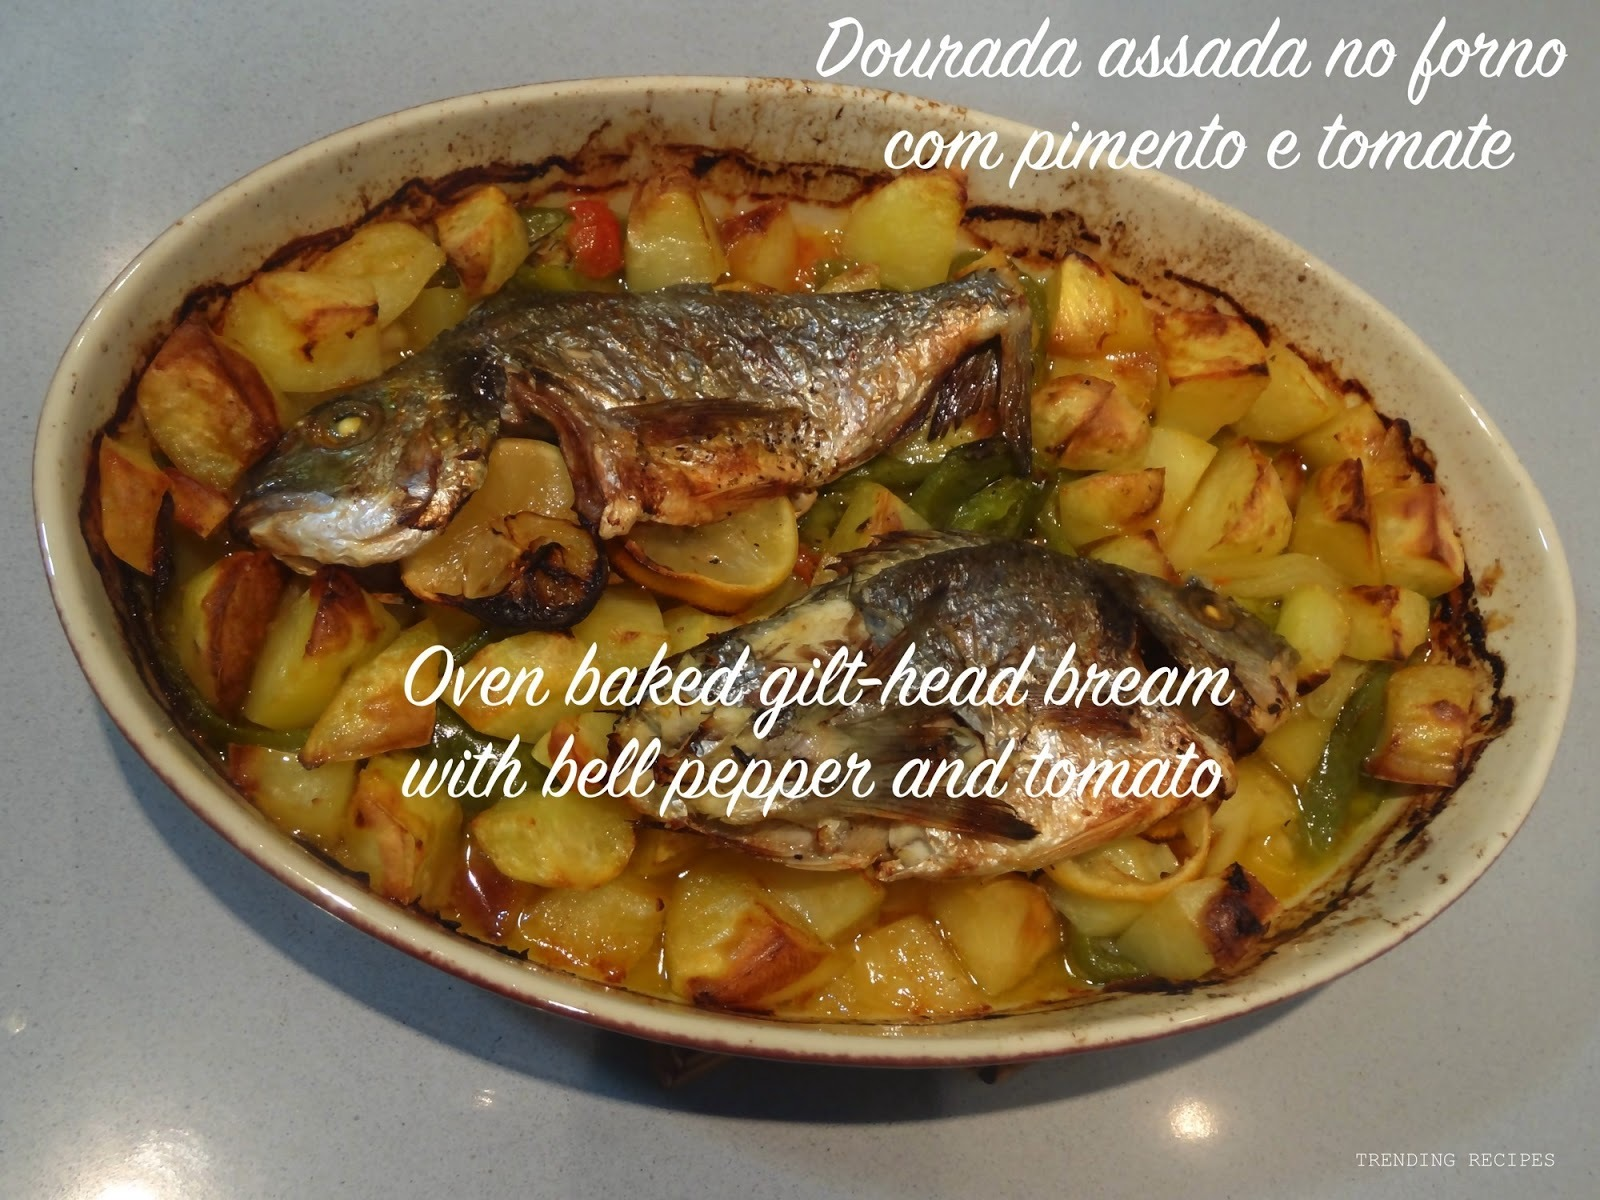 Oven baked gilt-head bream with bell pepper and tomato // Dourada assada no forno com pimento e tomate